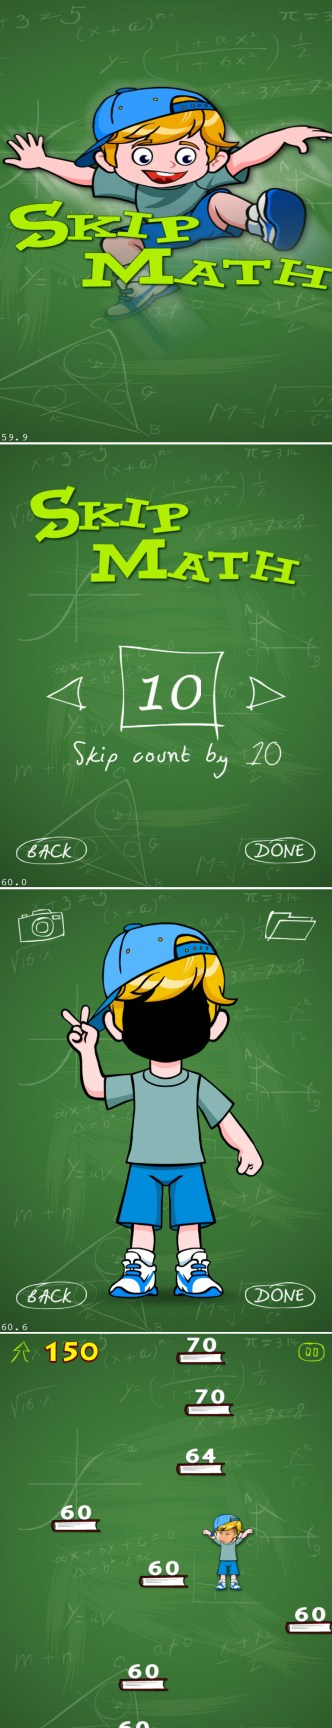 Skip Counting - skip count by